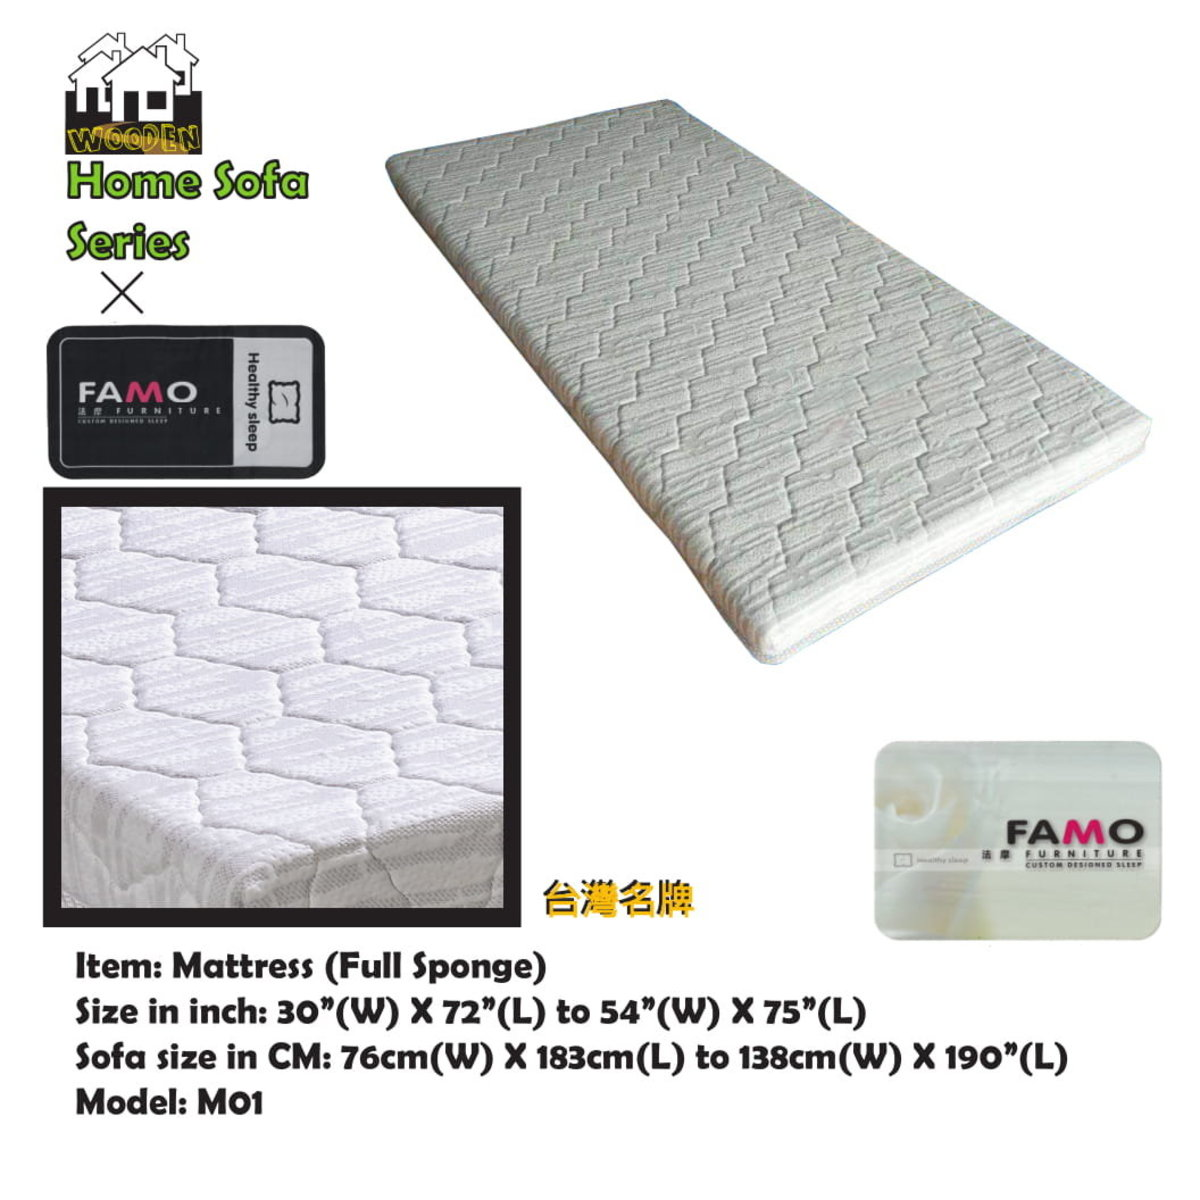 Mattress (Full Sponge) 2 inchs thick